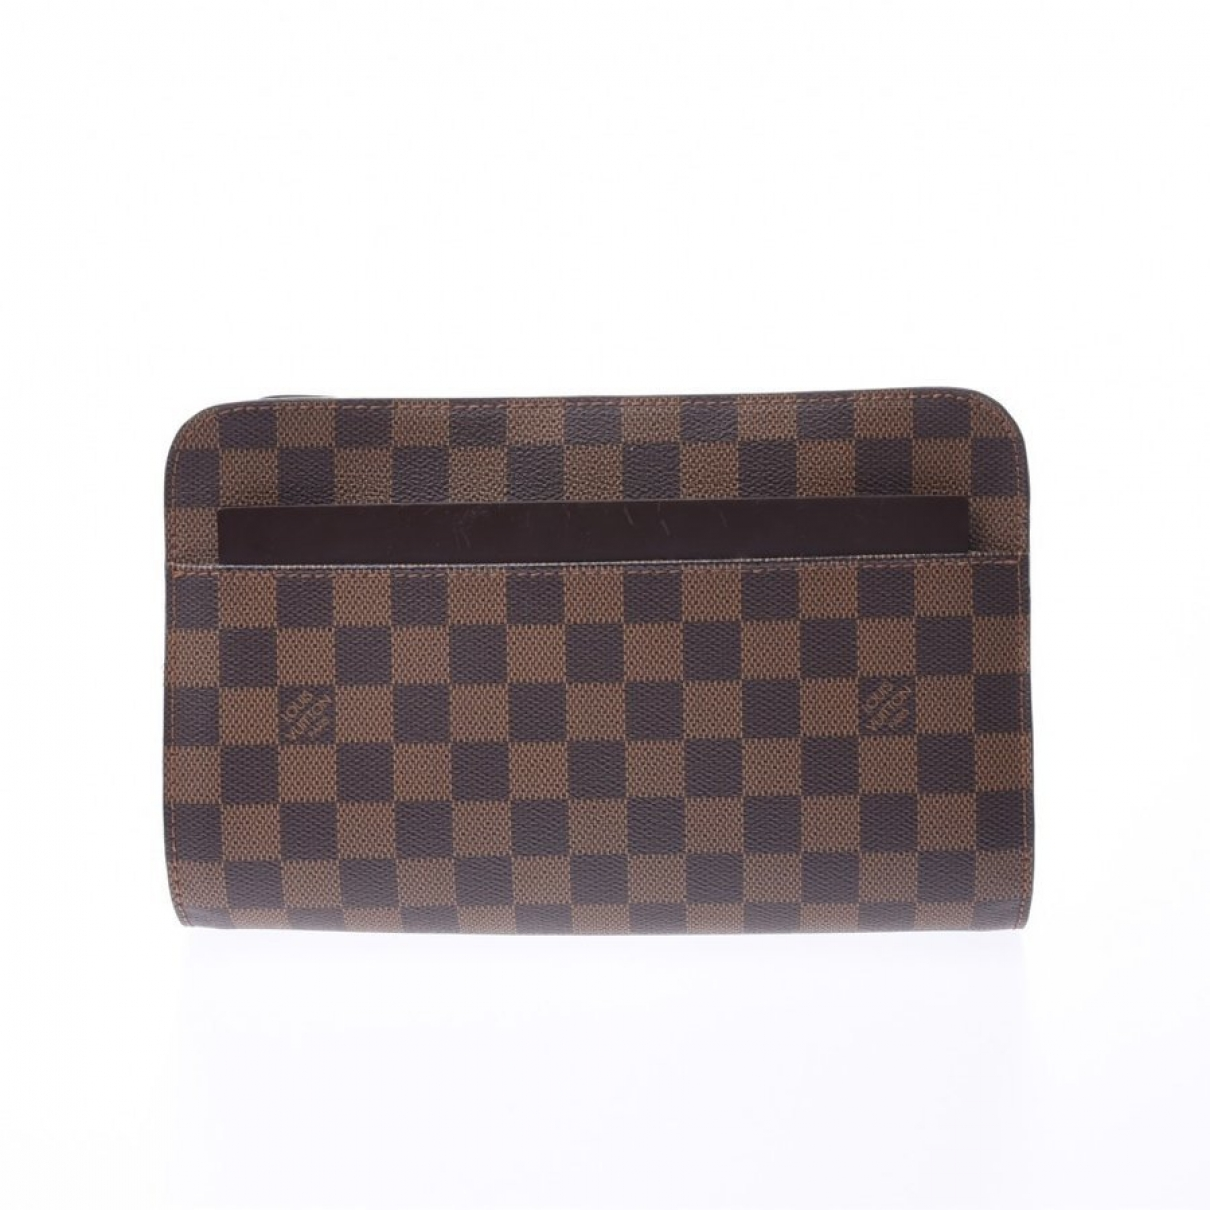 Louis Vuitton Saint-Louis Brown Cloth Clutch bag for Women \N